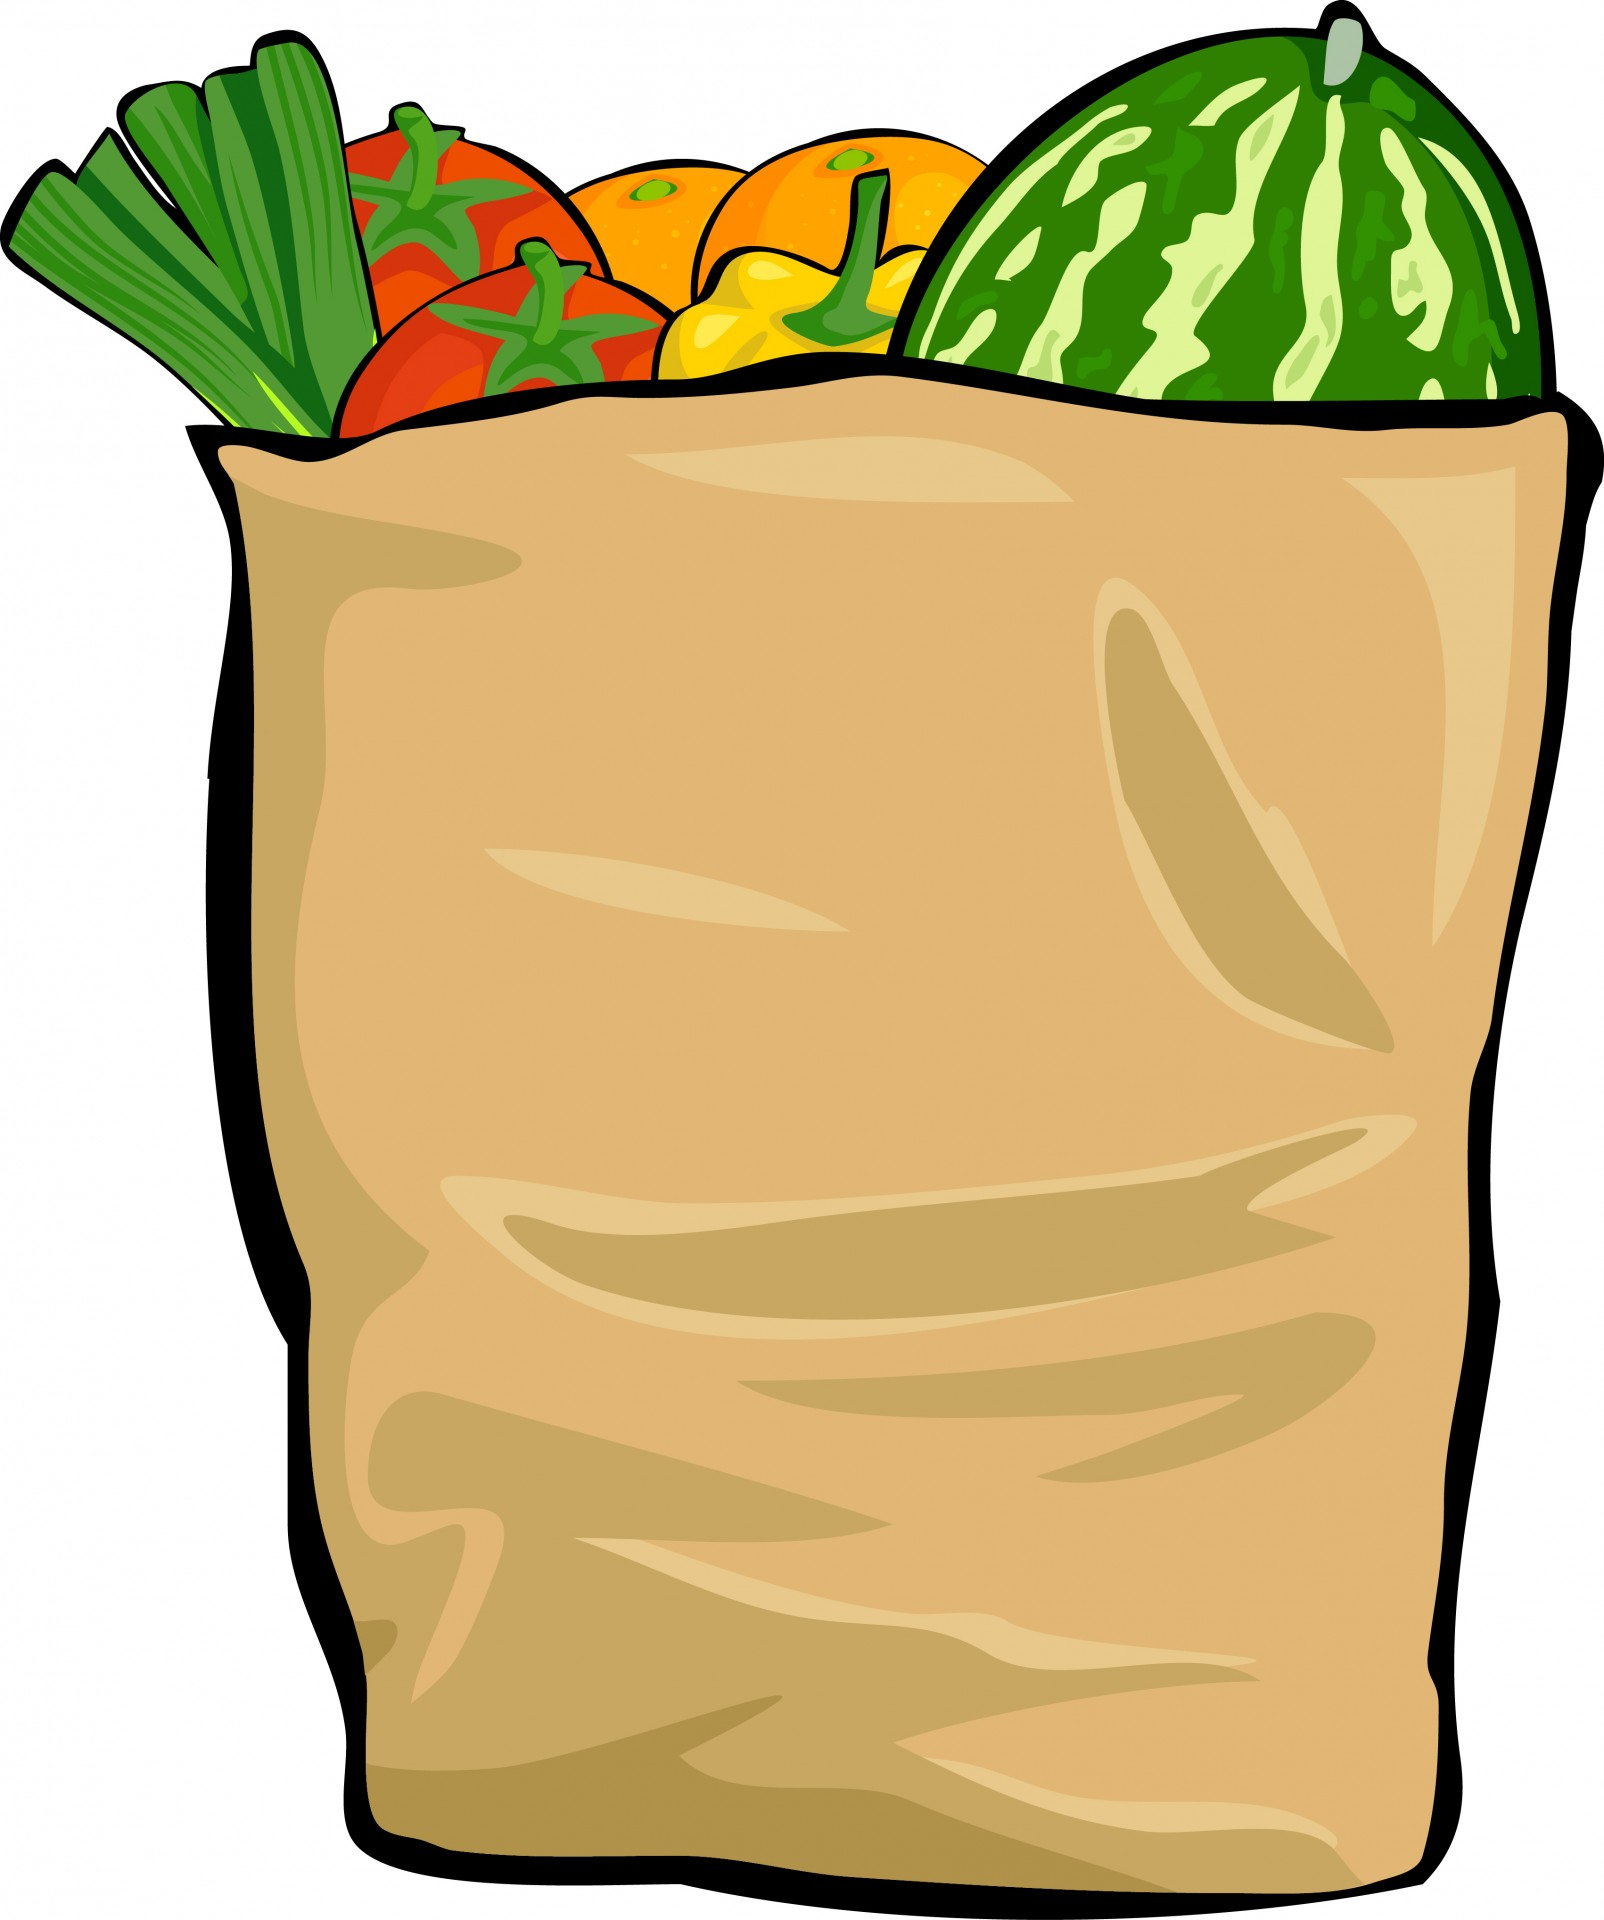 1604x1920 Bag Of Food Free Clipart